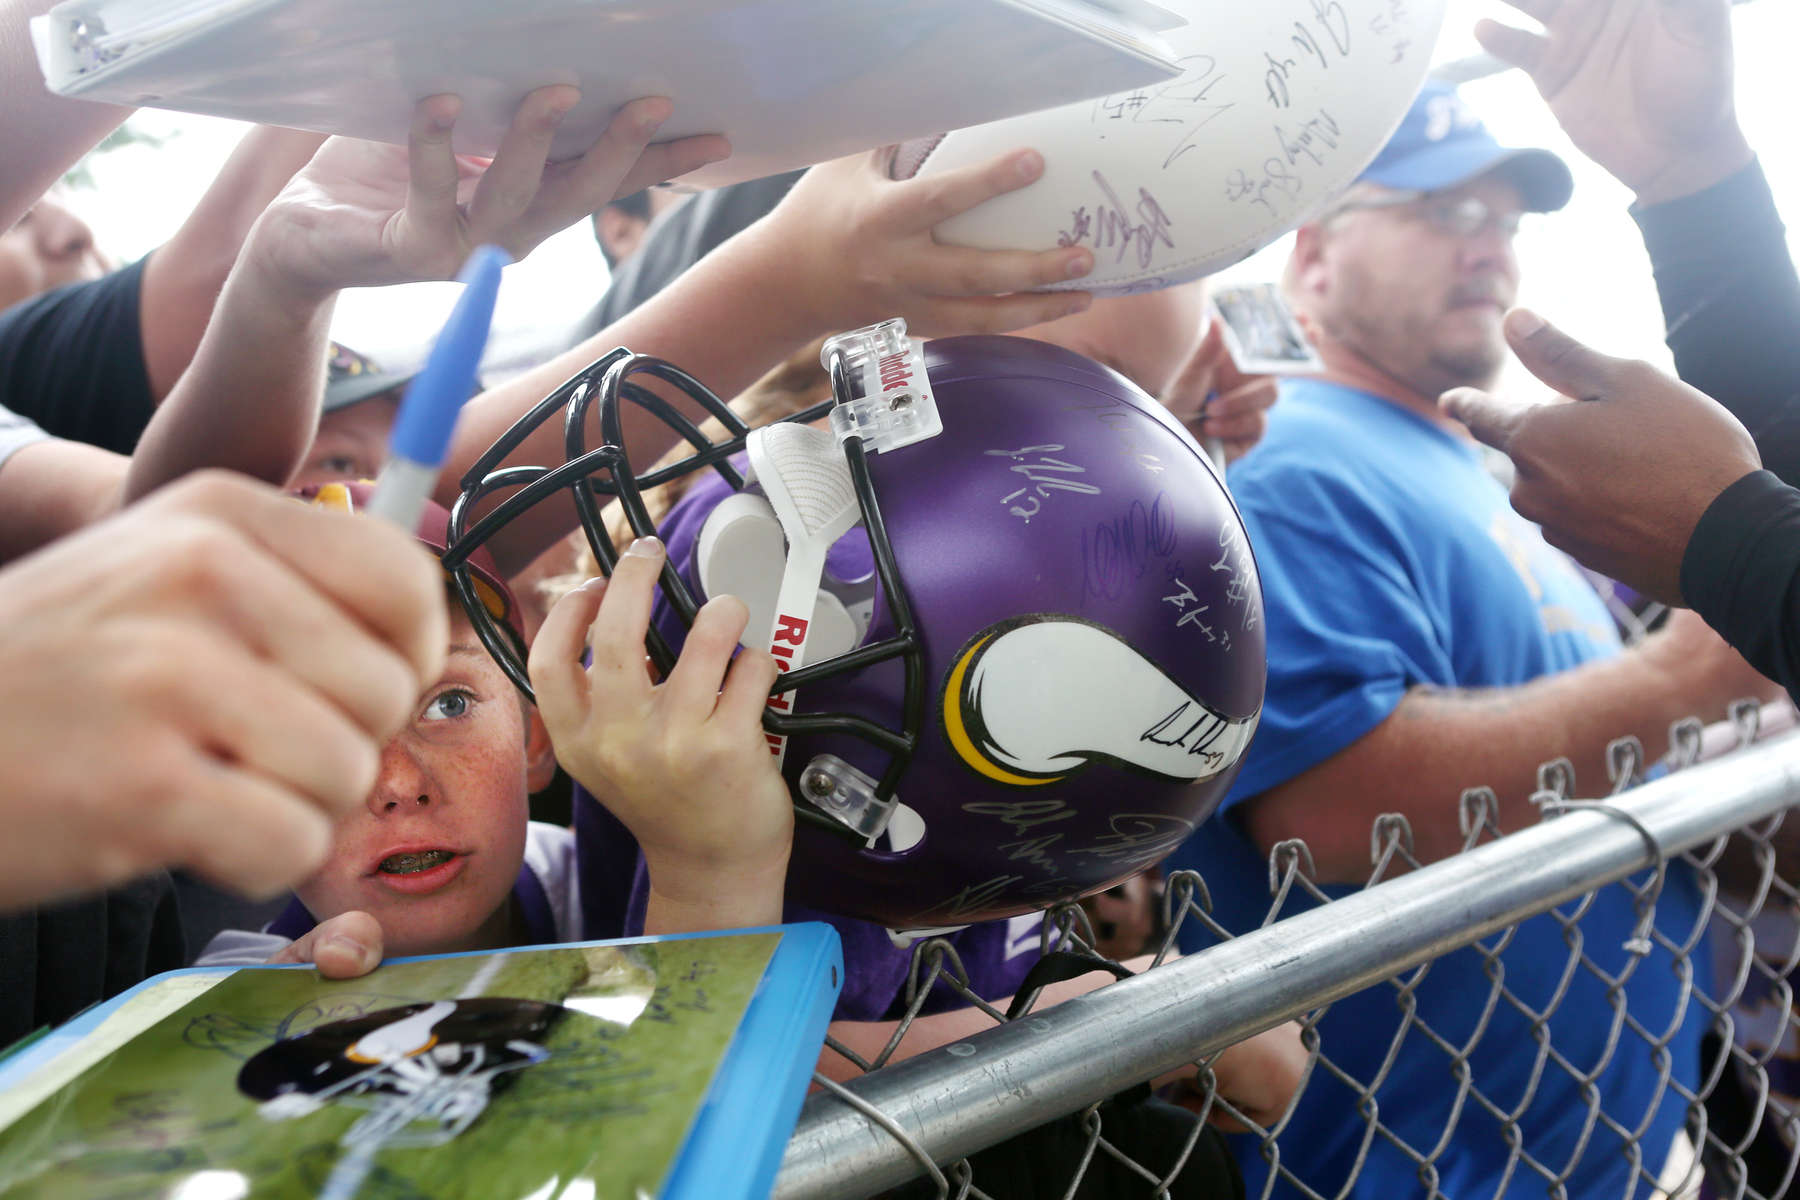 Bryant Brunz, 12, attempts to a get a helmet signed during the Vikings first day of training camp in Mankato, Minn.